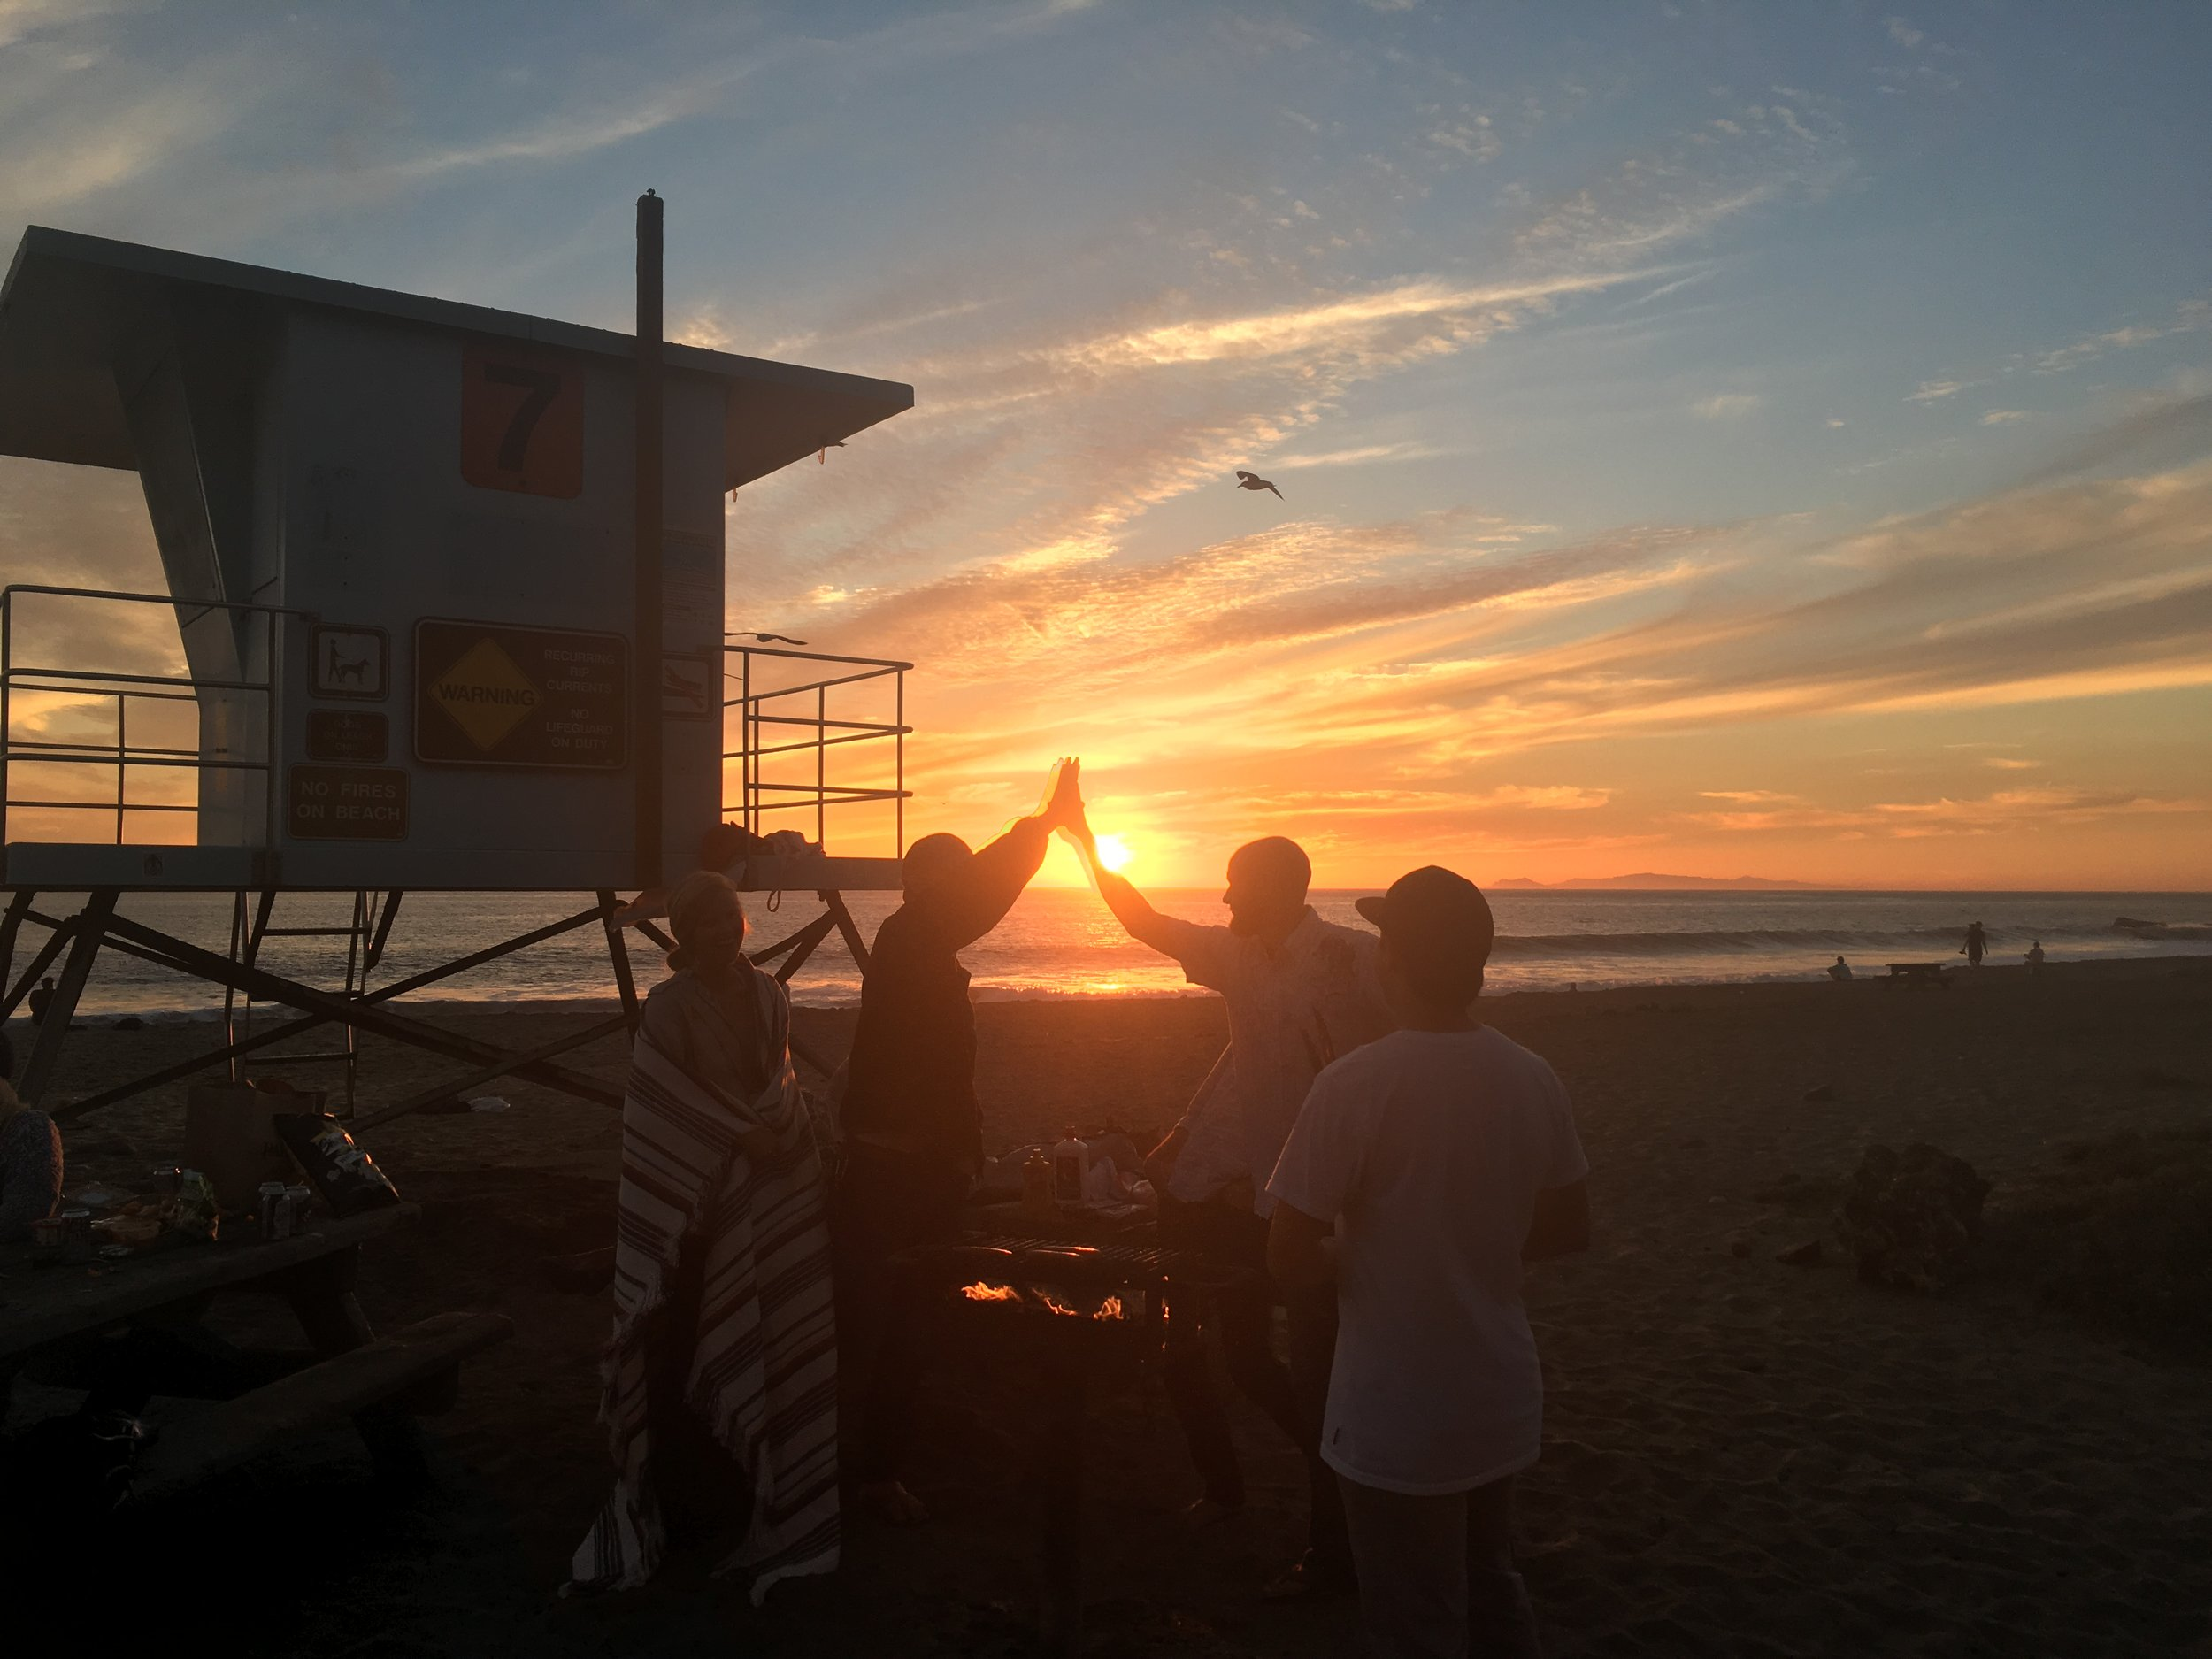 This past weekend at a gathering with friends, BBQ and sunset at Sycamore Cove